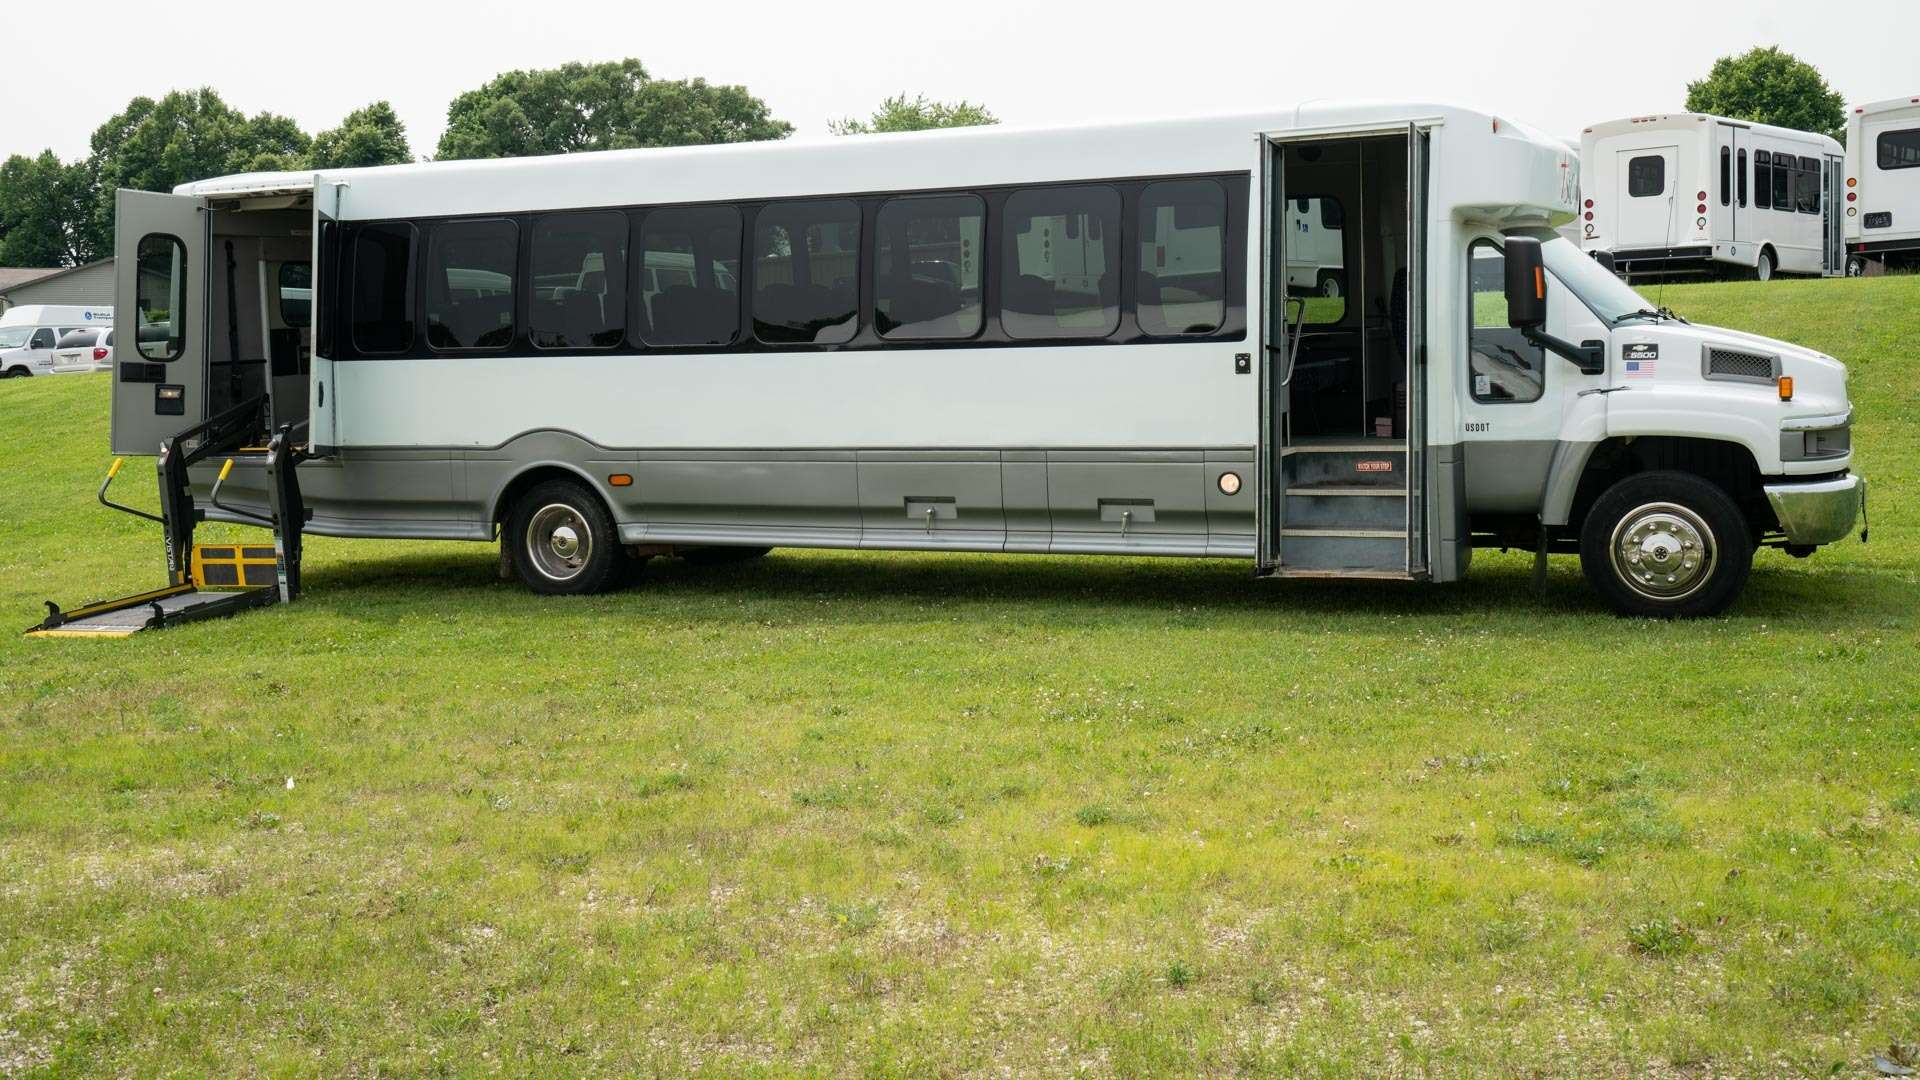 2008 Chevrolet C-5500 | Conversion: ADA Wheelchair Accessible Bus